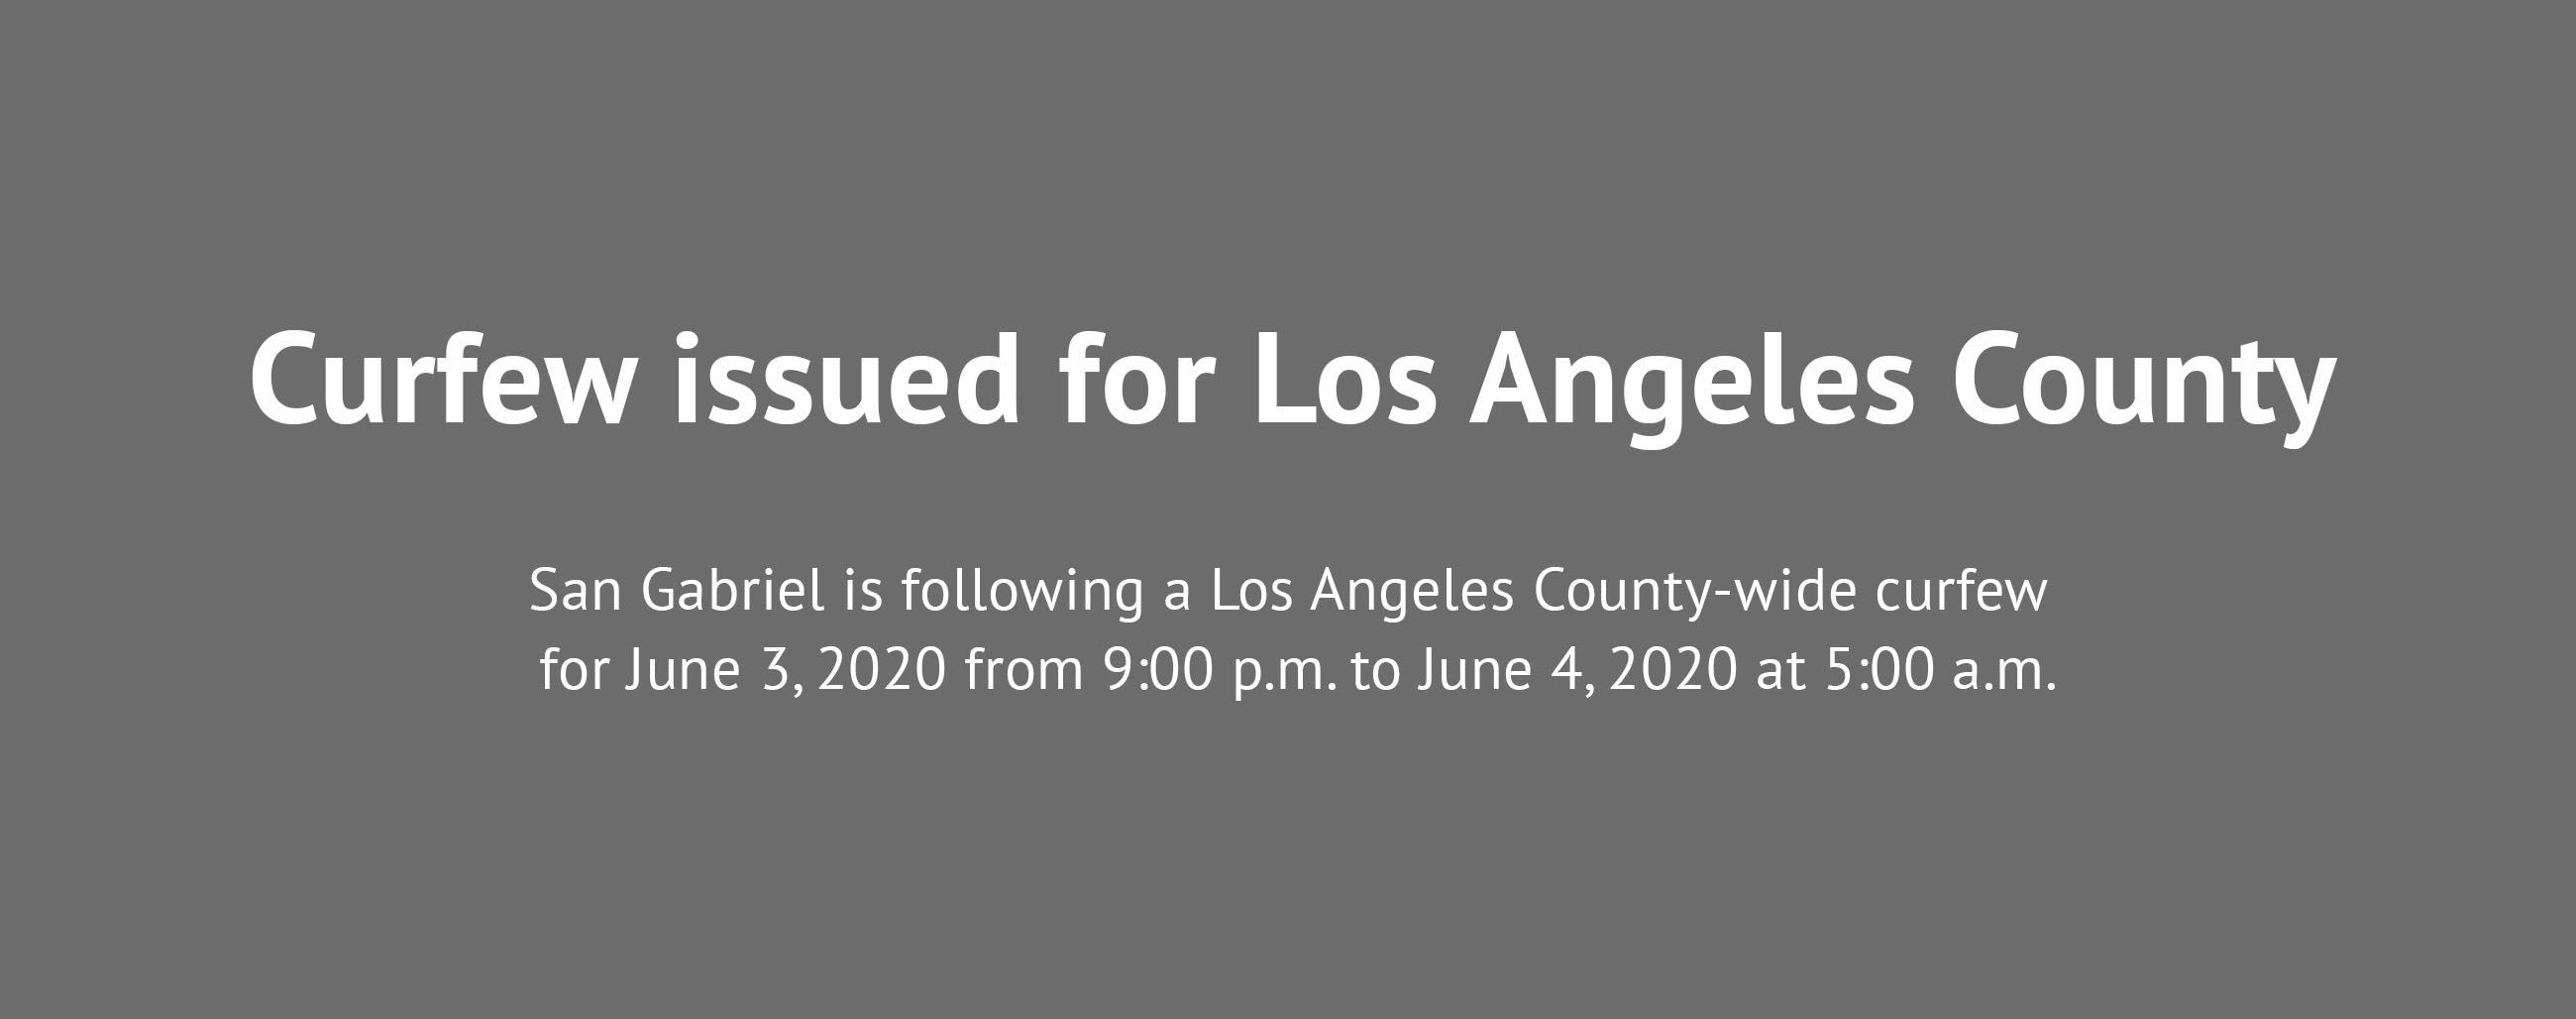 Curfew issued for Los Angeles County